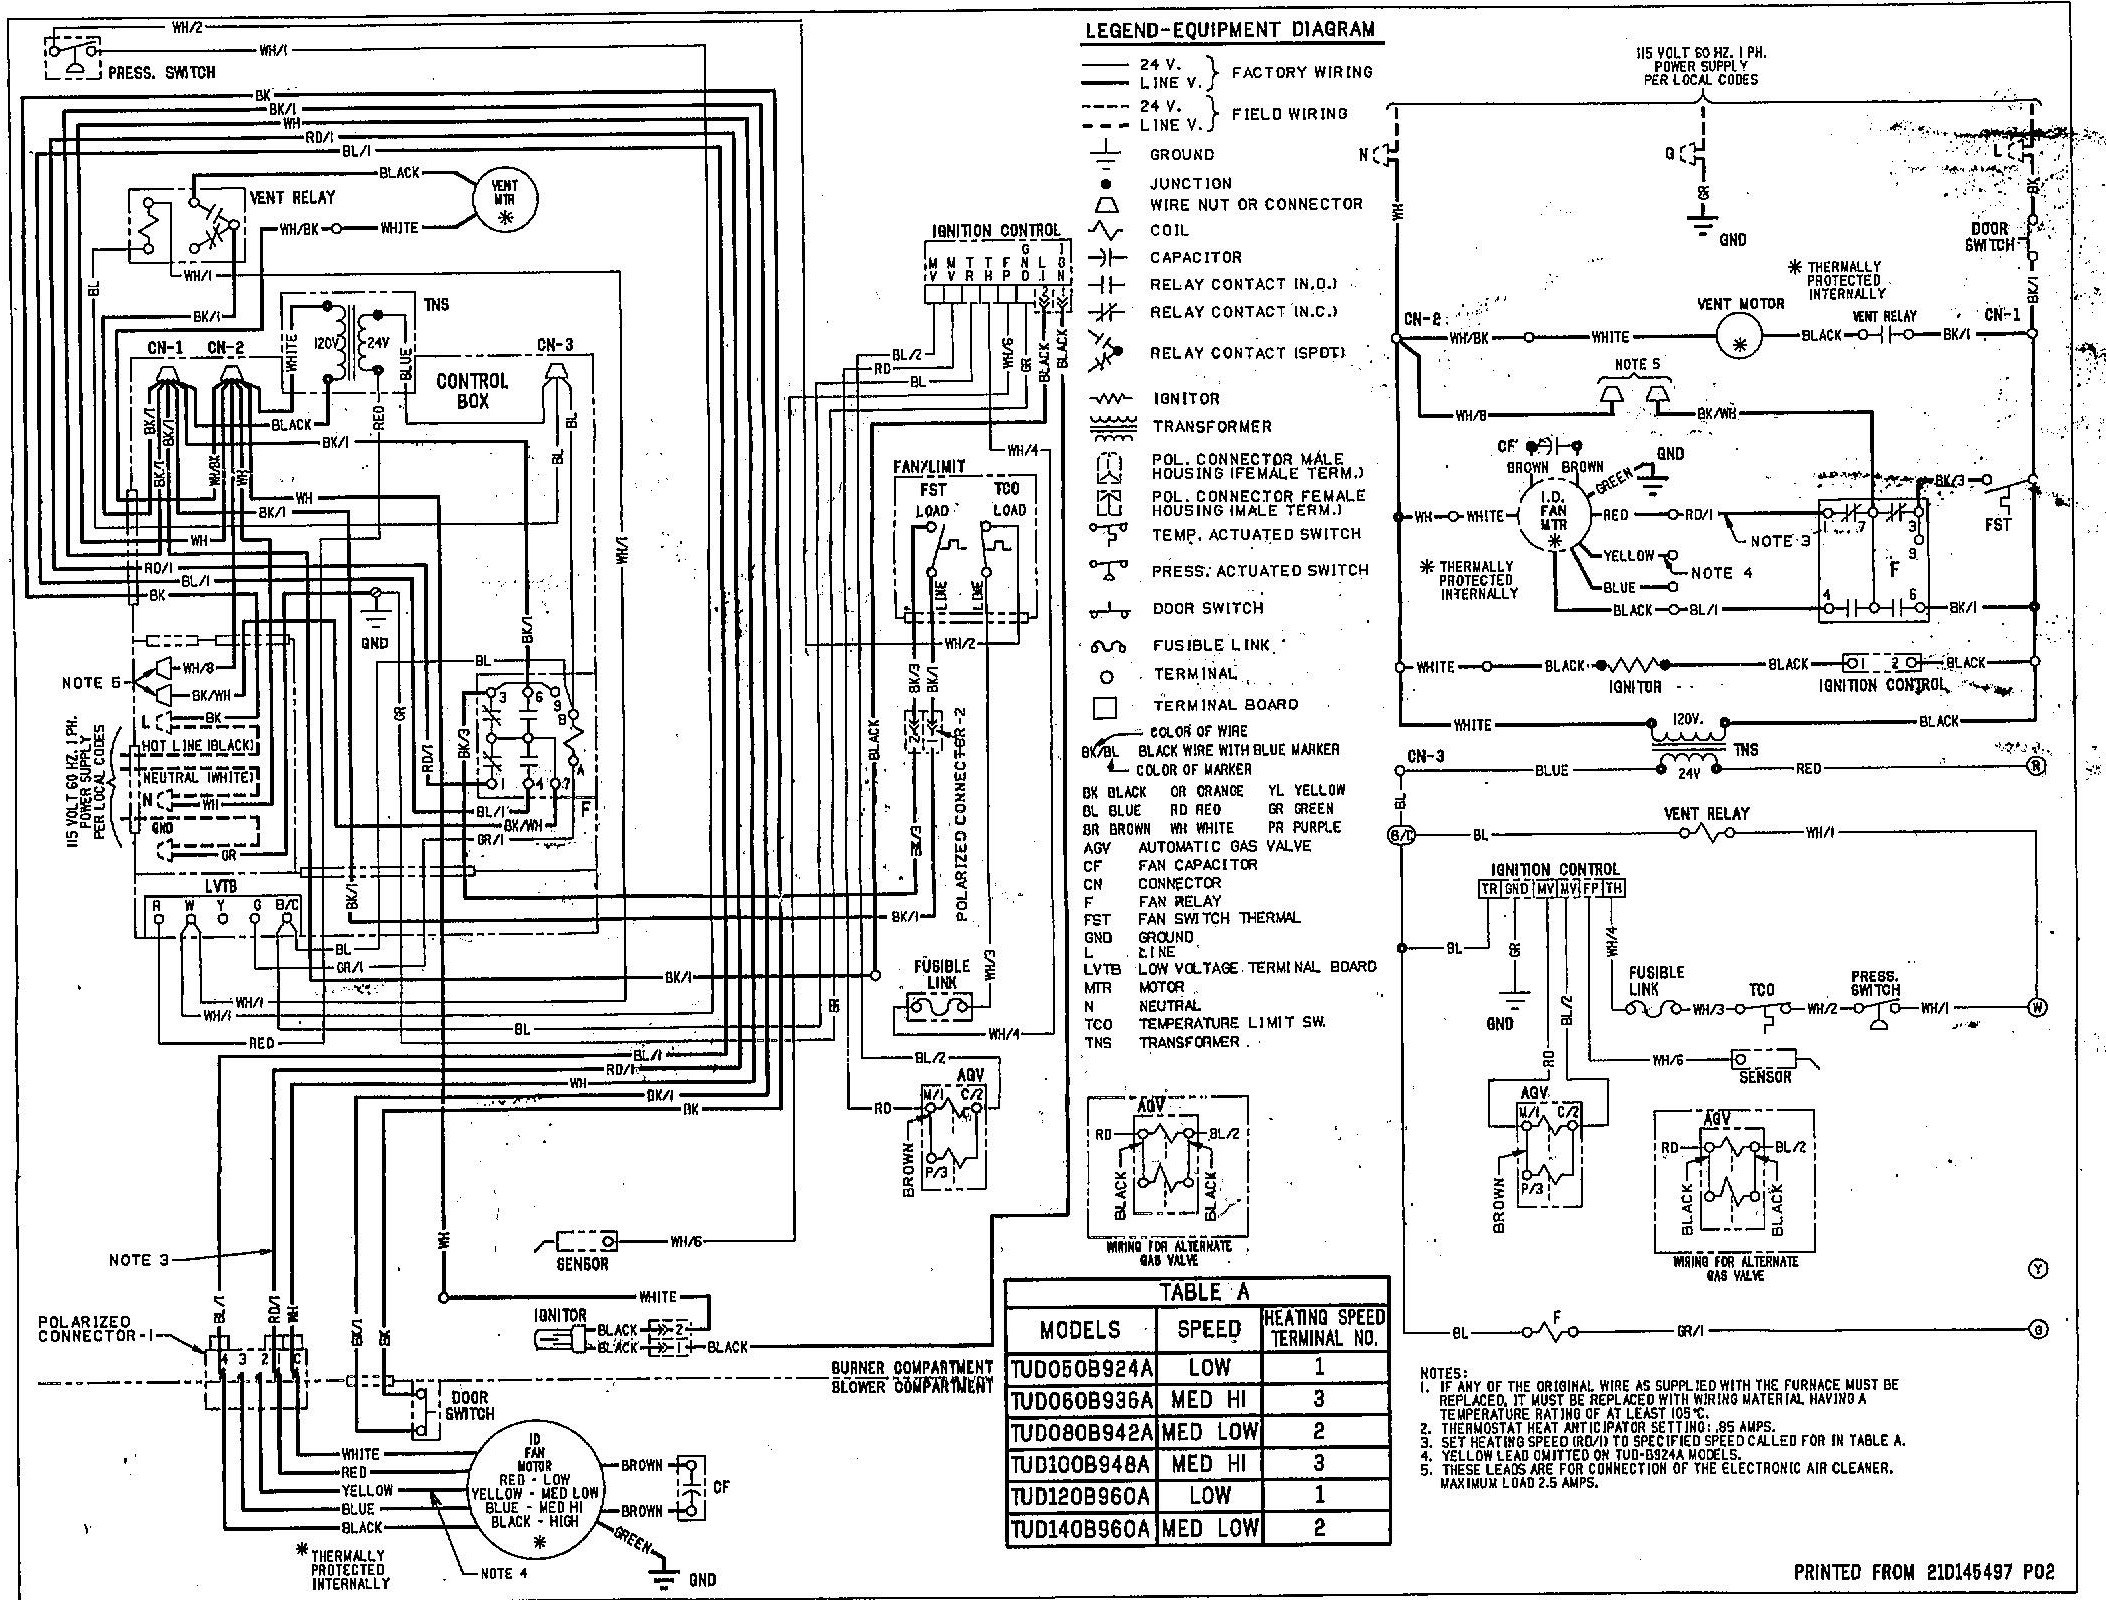 trane ycd 060 wiring diagram Download-Trane Wiring Diagram 2-l